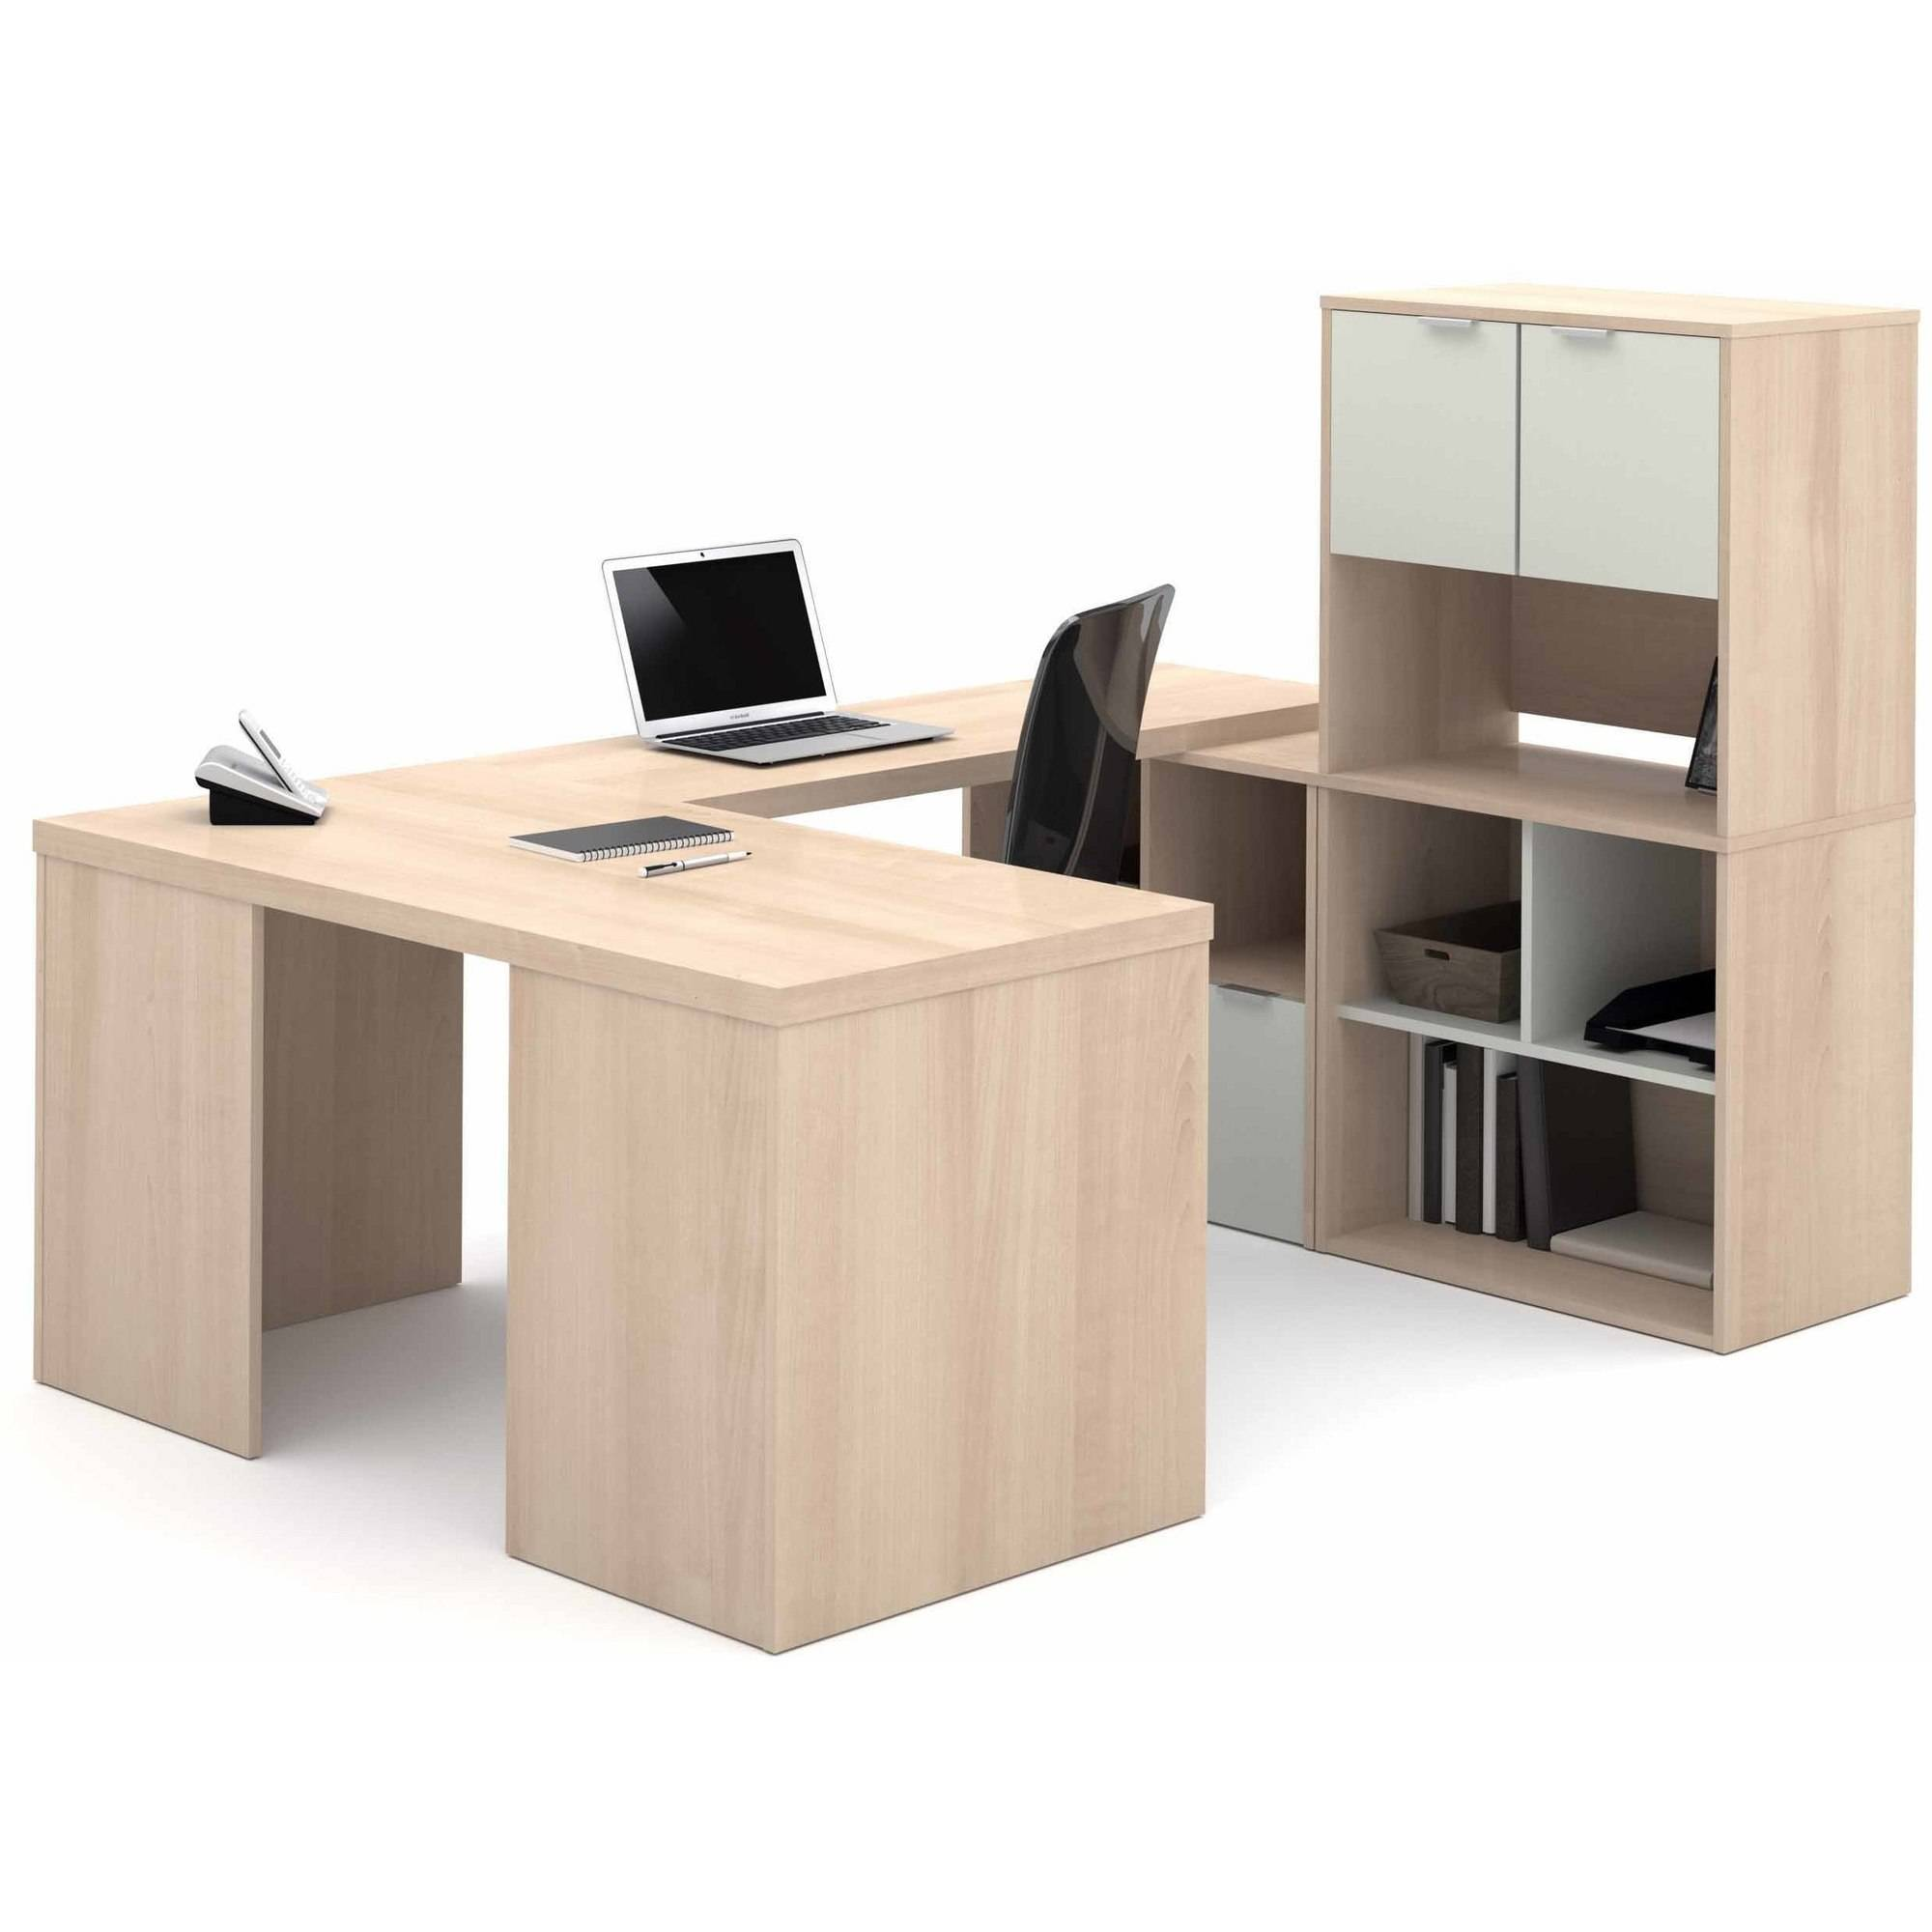 88.5 in. U-Shaped Desk in Northern Maple and Sandstone Finish